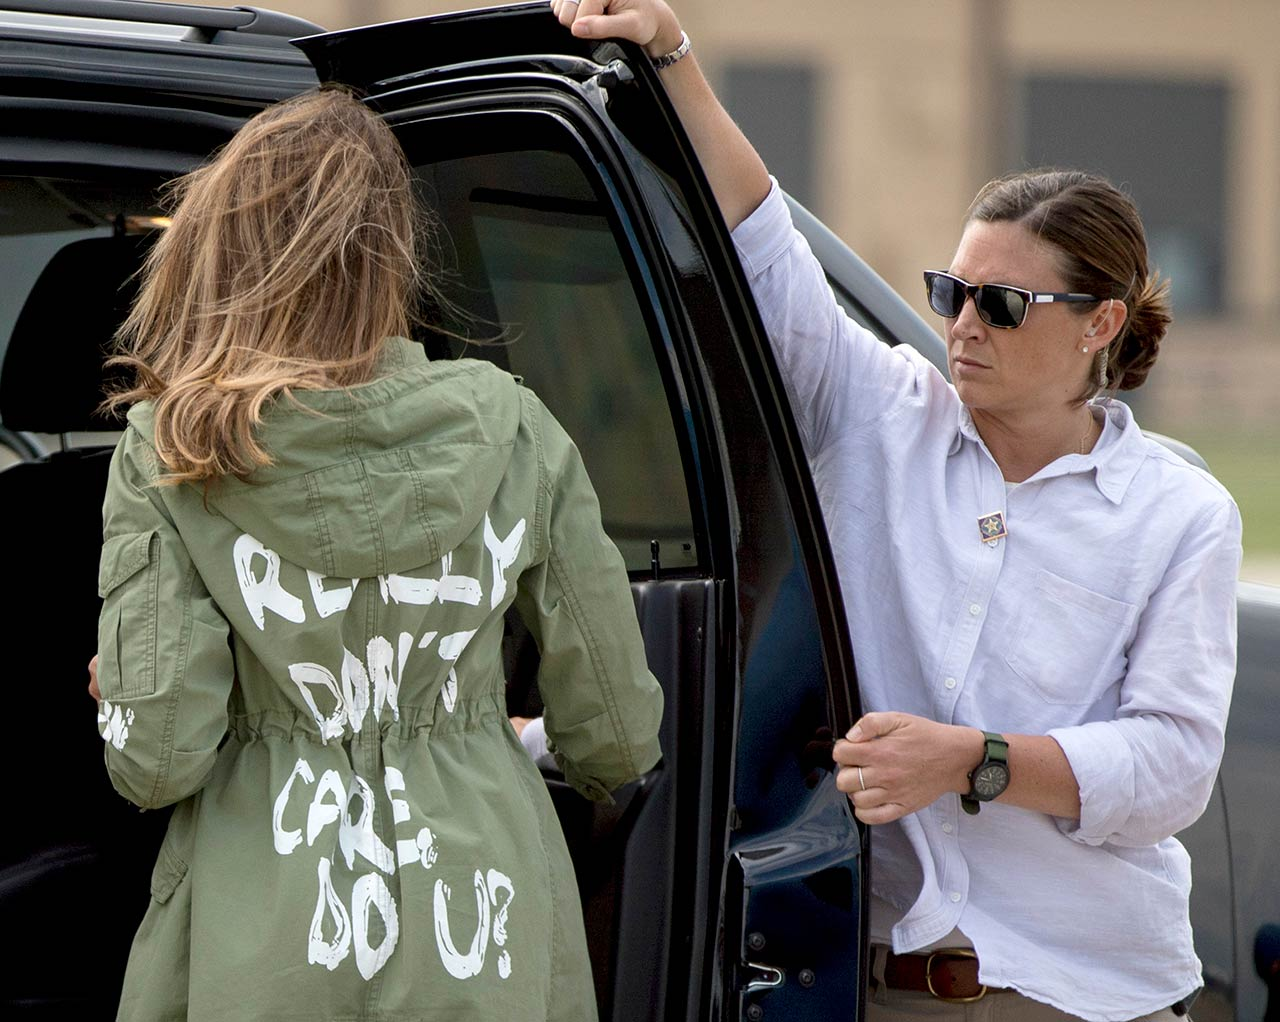 Melania Trump walks to her vehicle as she arrives at Andrews Air Force Base, Md., Thursday, June 21, 2018, after visiting the Upbring New Hope Children Center in Texas.